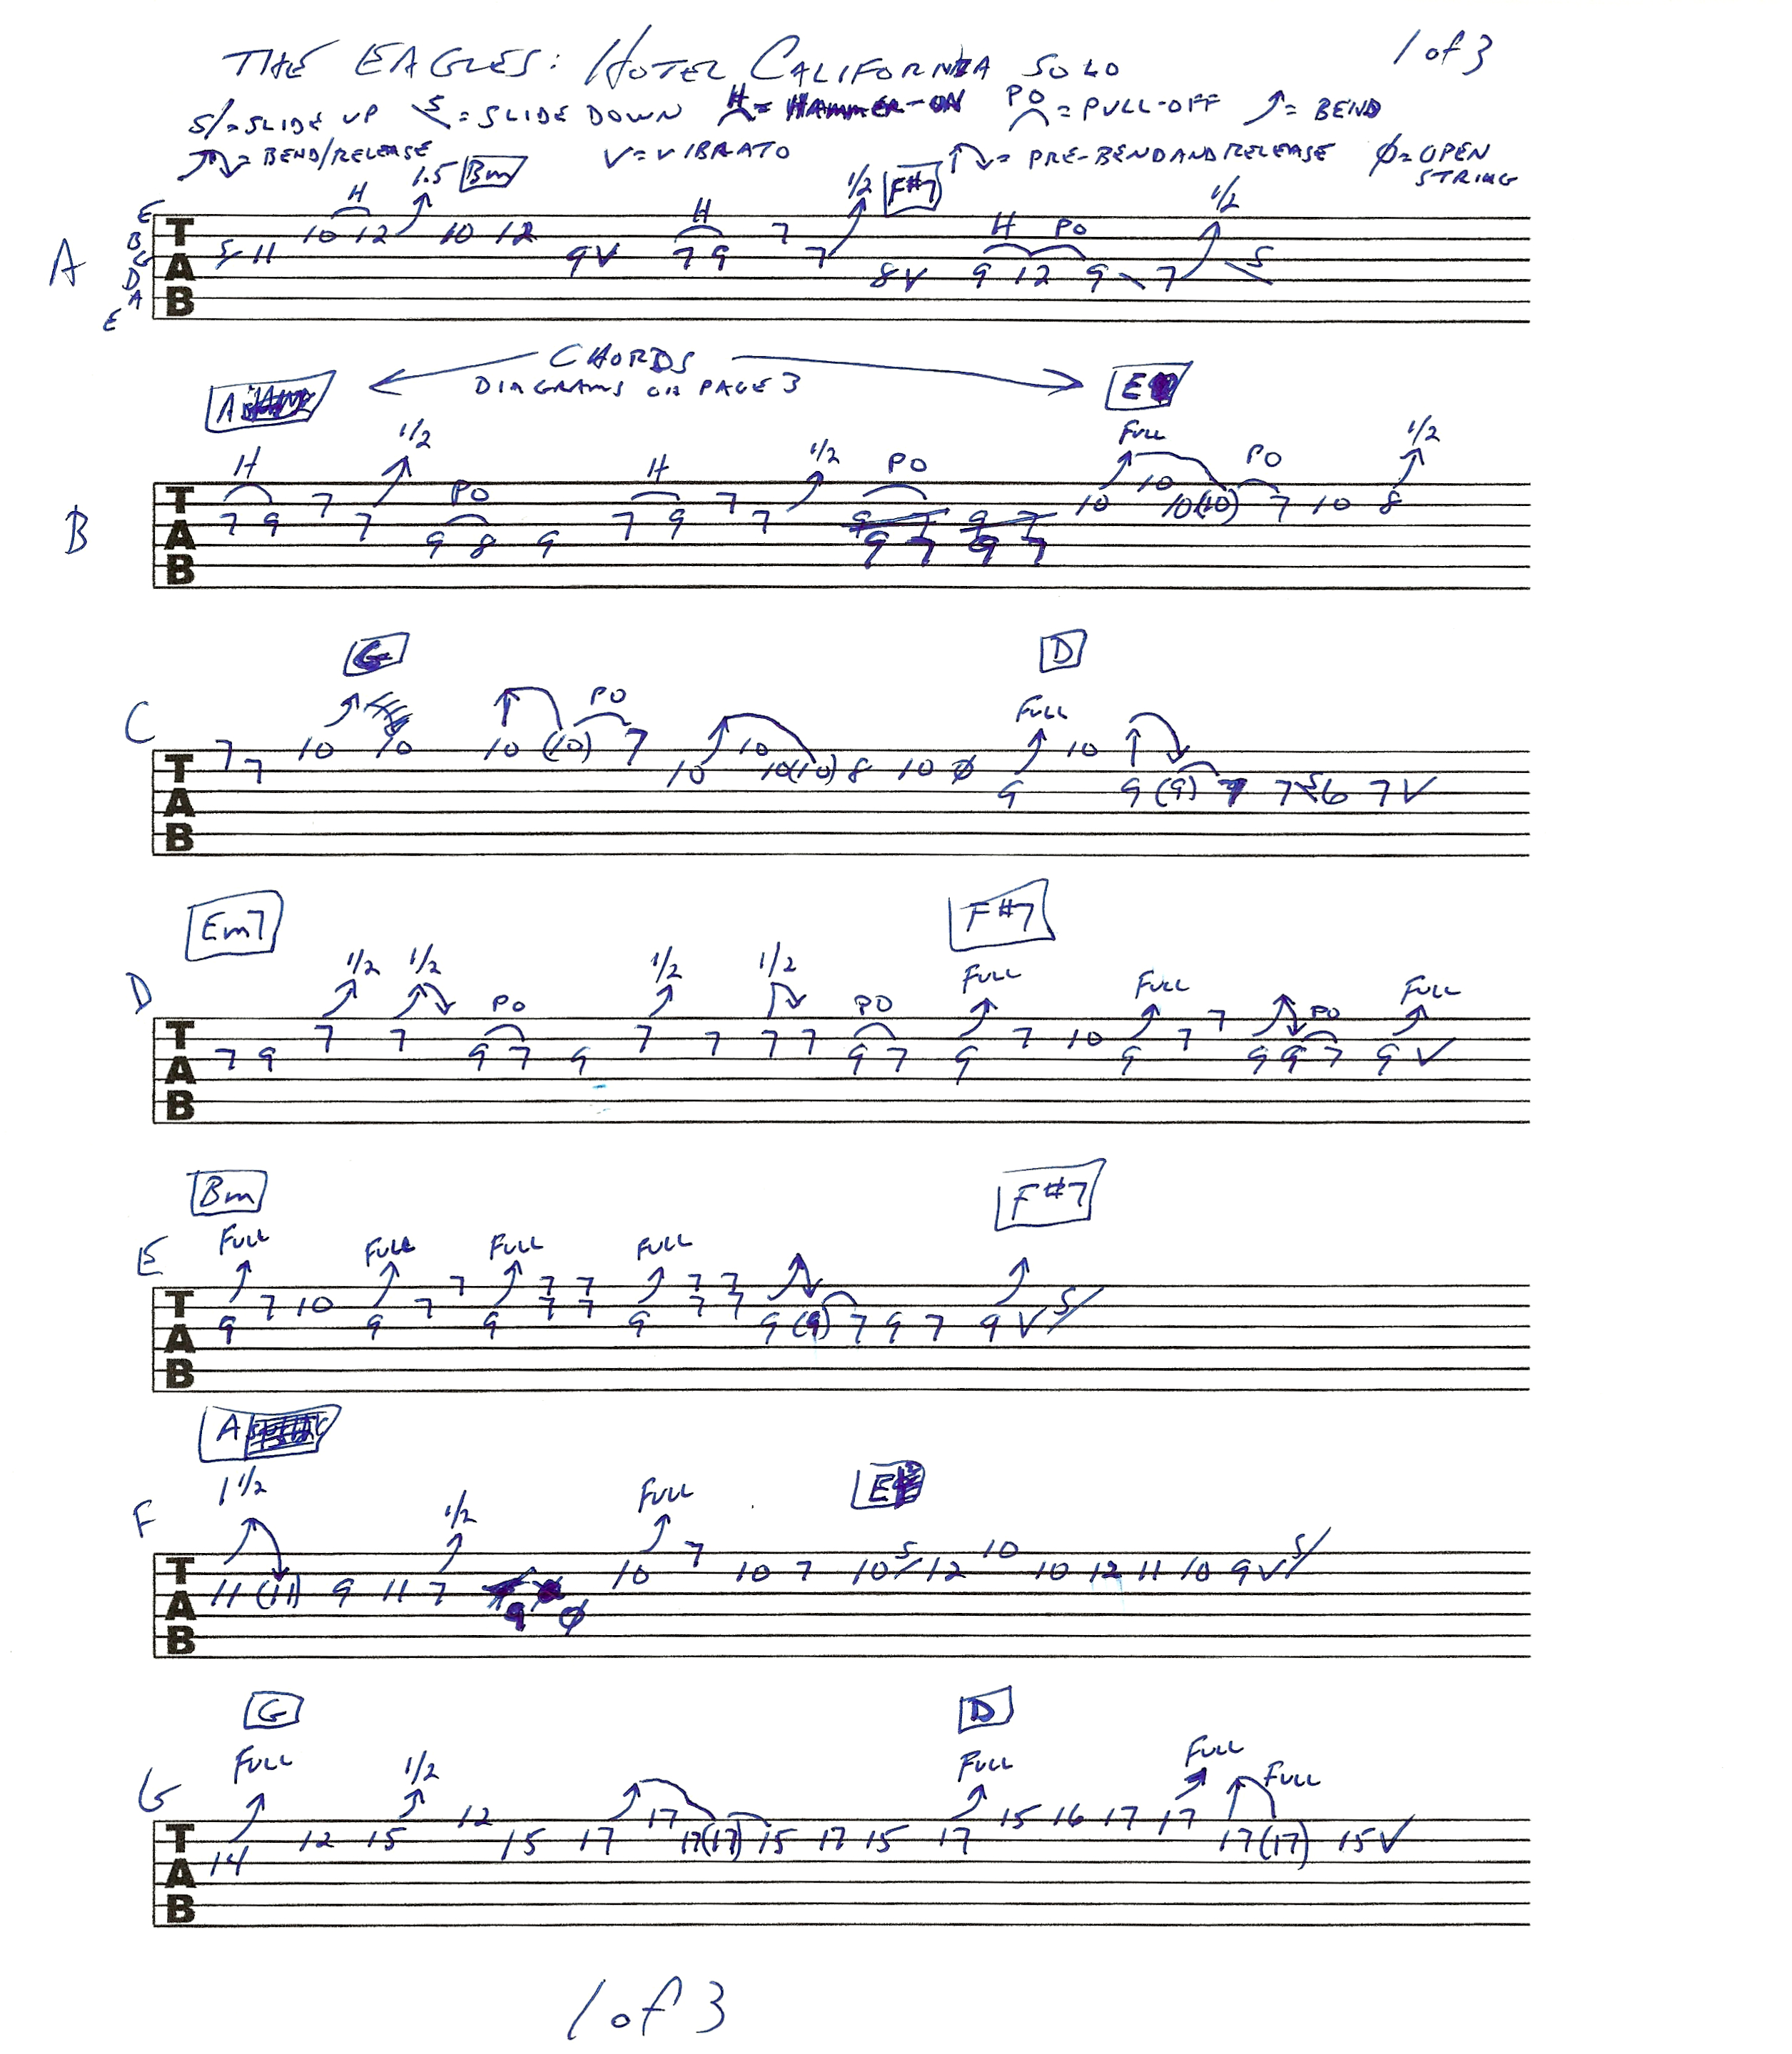 Best Chords Guitar Eagles Hotel California Image Collection